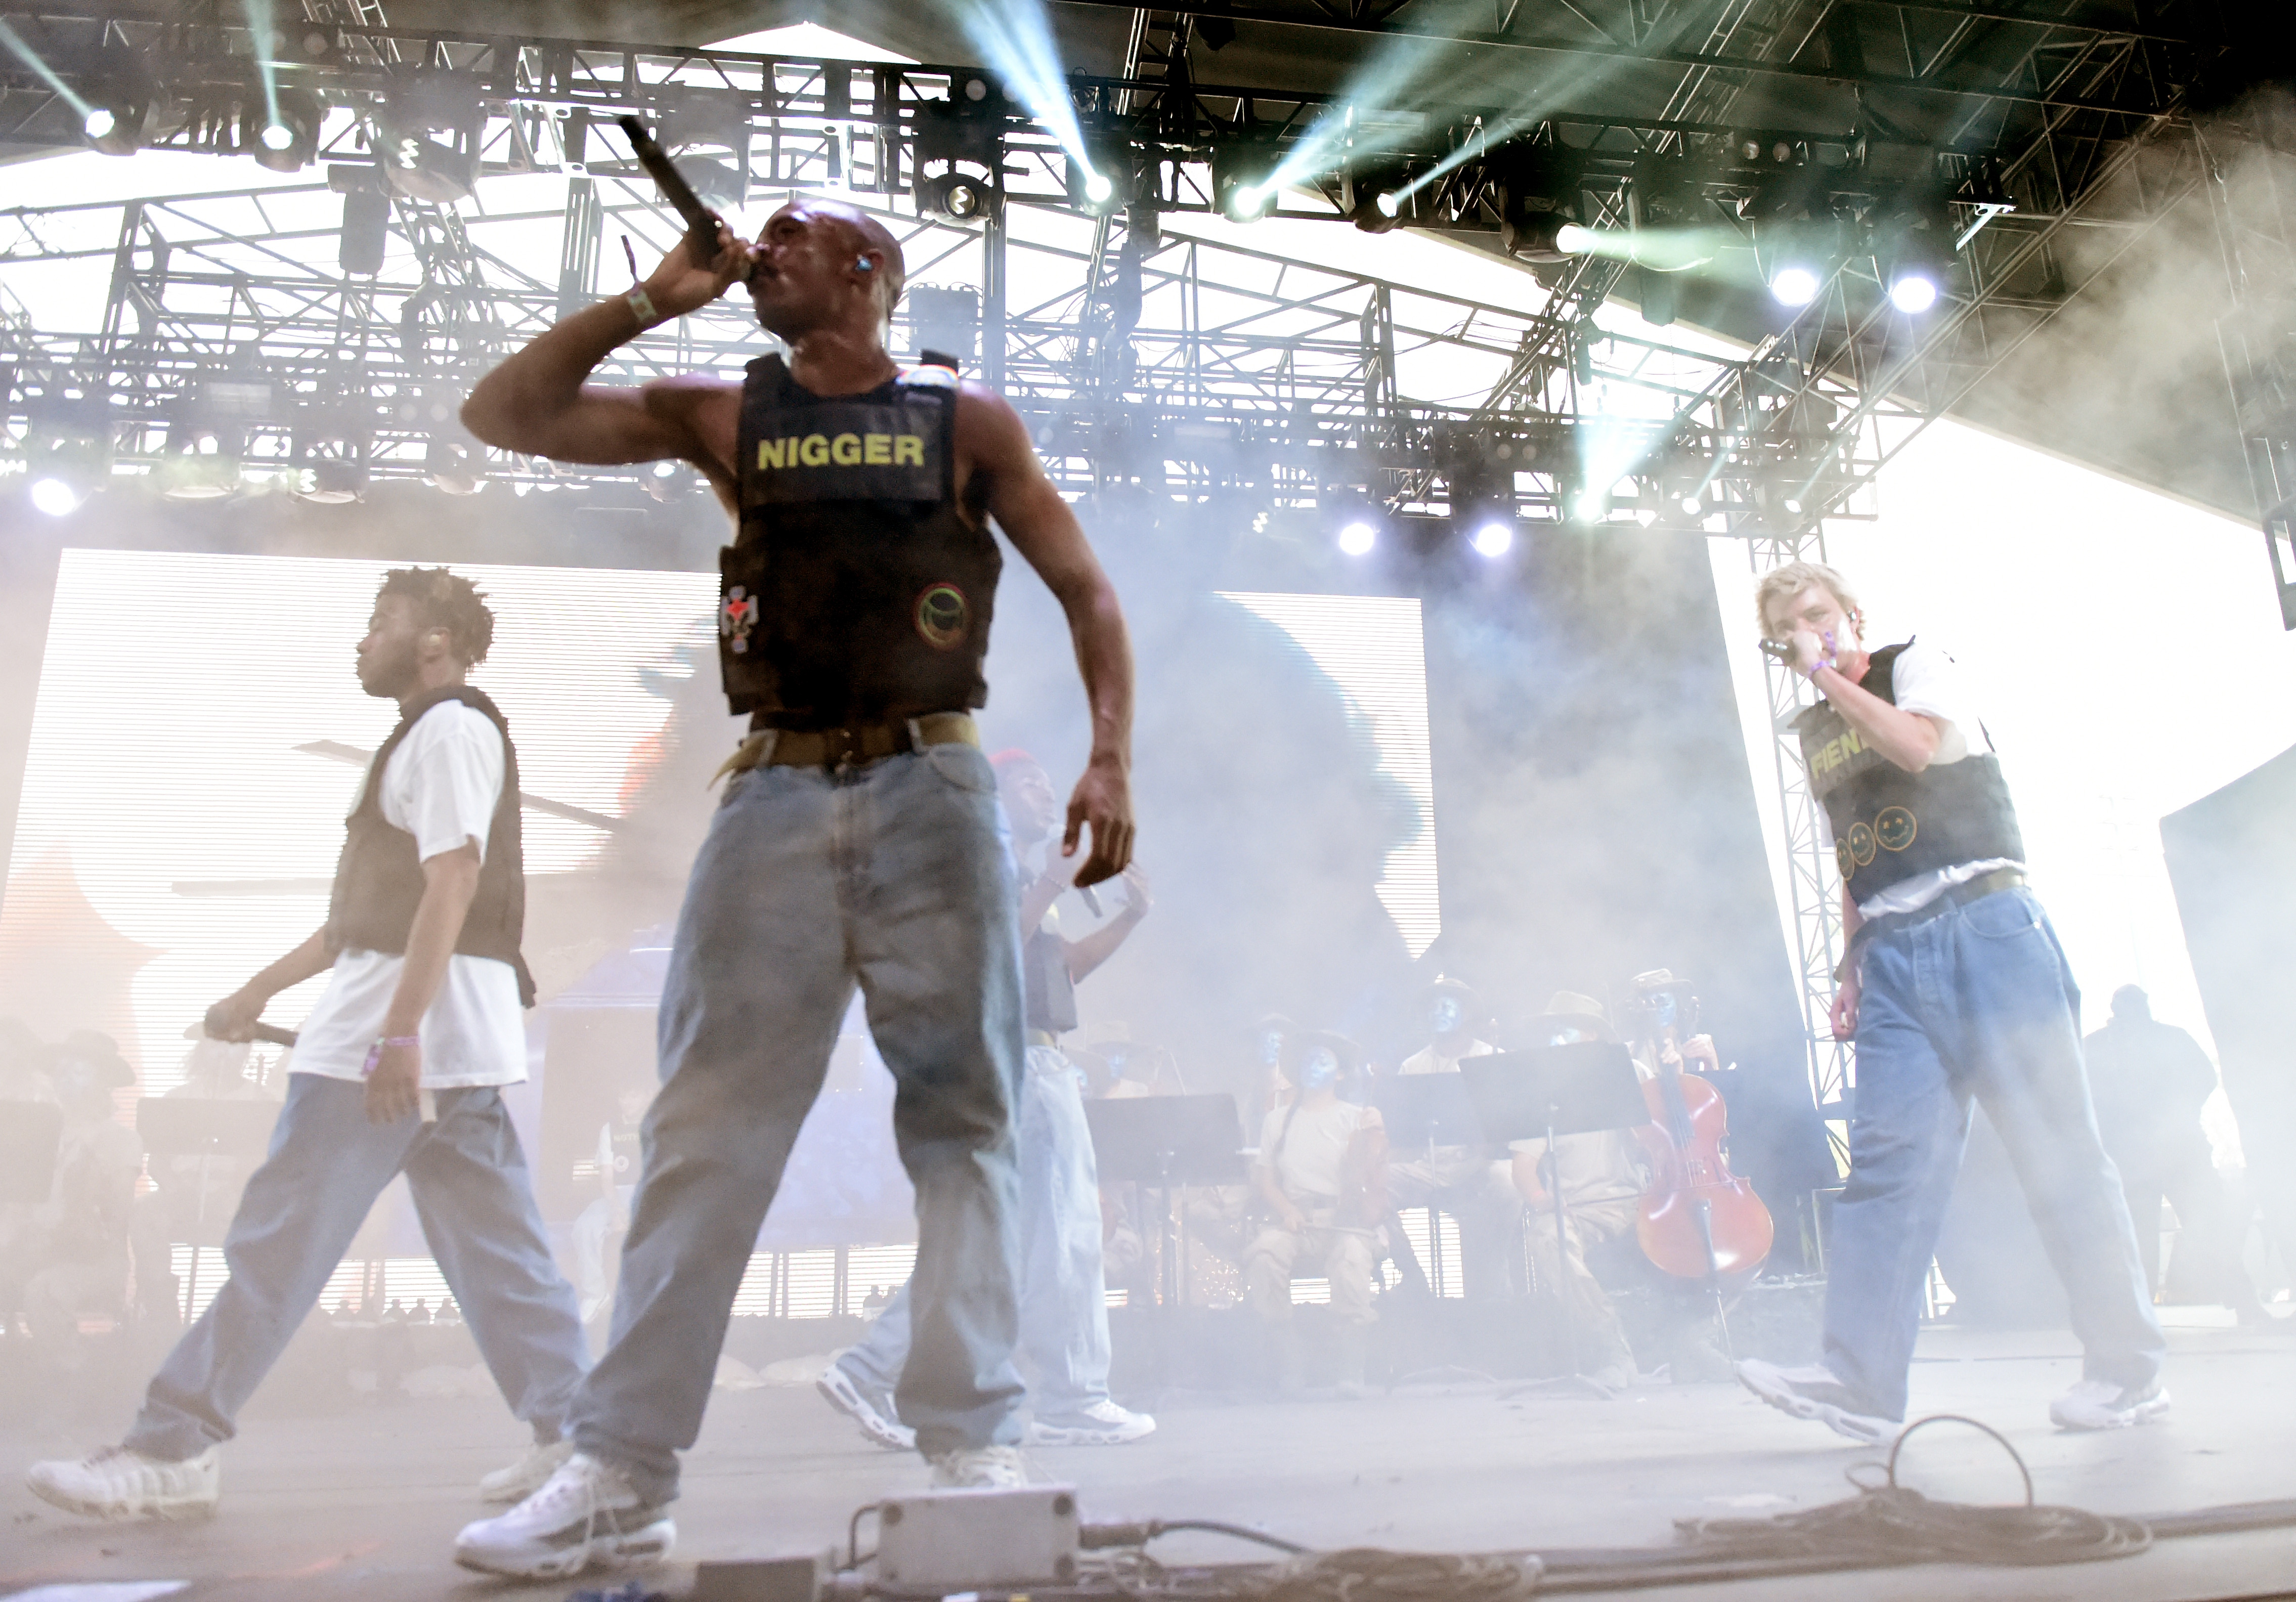 (EDITORS NOTE: This image contains profanity.) (L-R) Kevin Abstract, Ameer Vann and Russell Boring aka JOBA of Brockhampton perform onstage during the 2018 Coachella Valley Music And Arts Festival at the Empire Polo Field on April 21, 2018, in Indio, California (Getty Images)